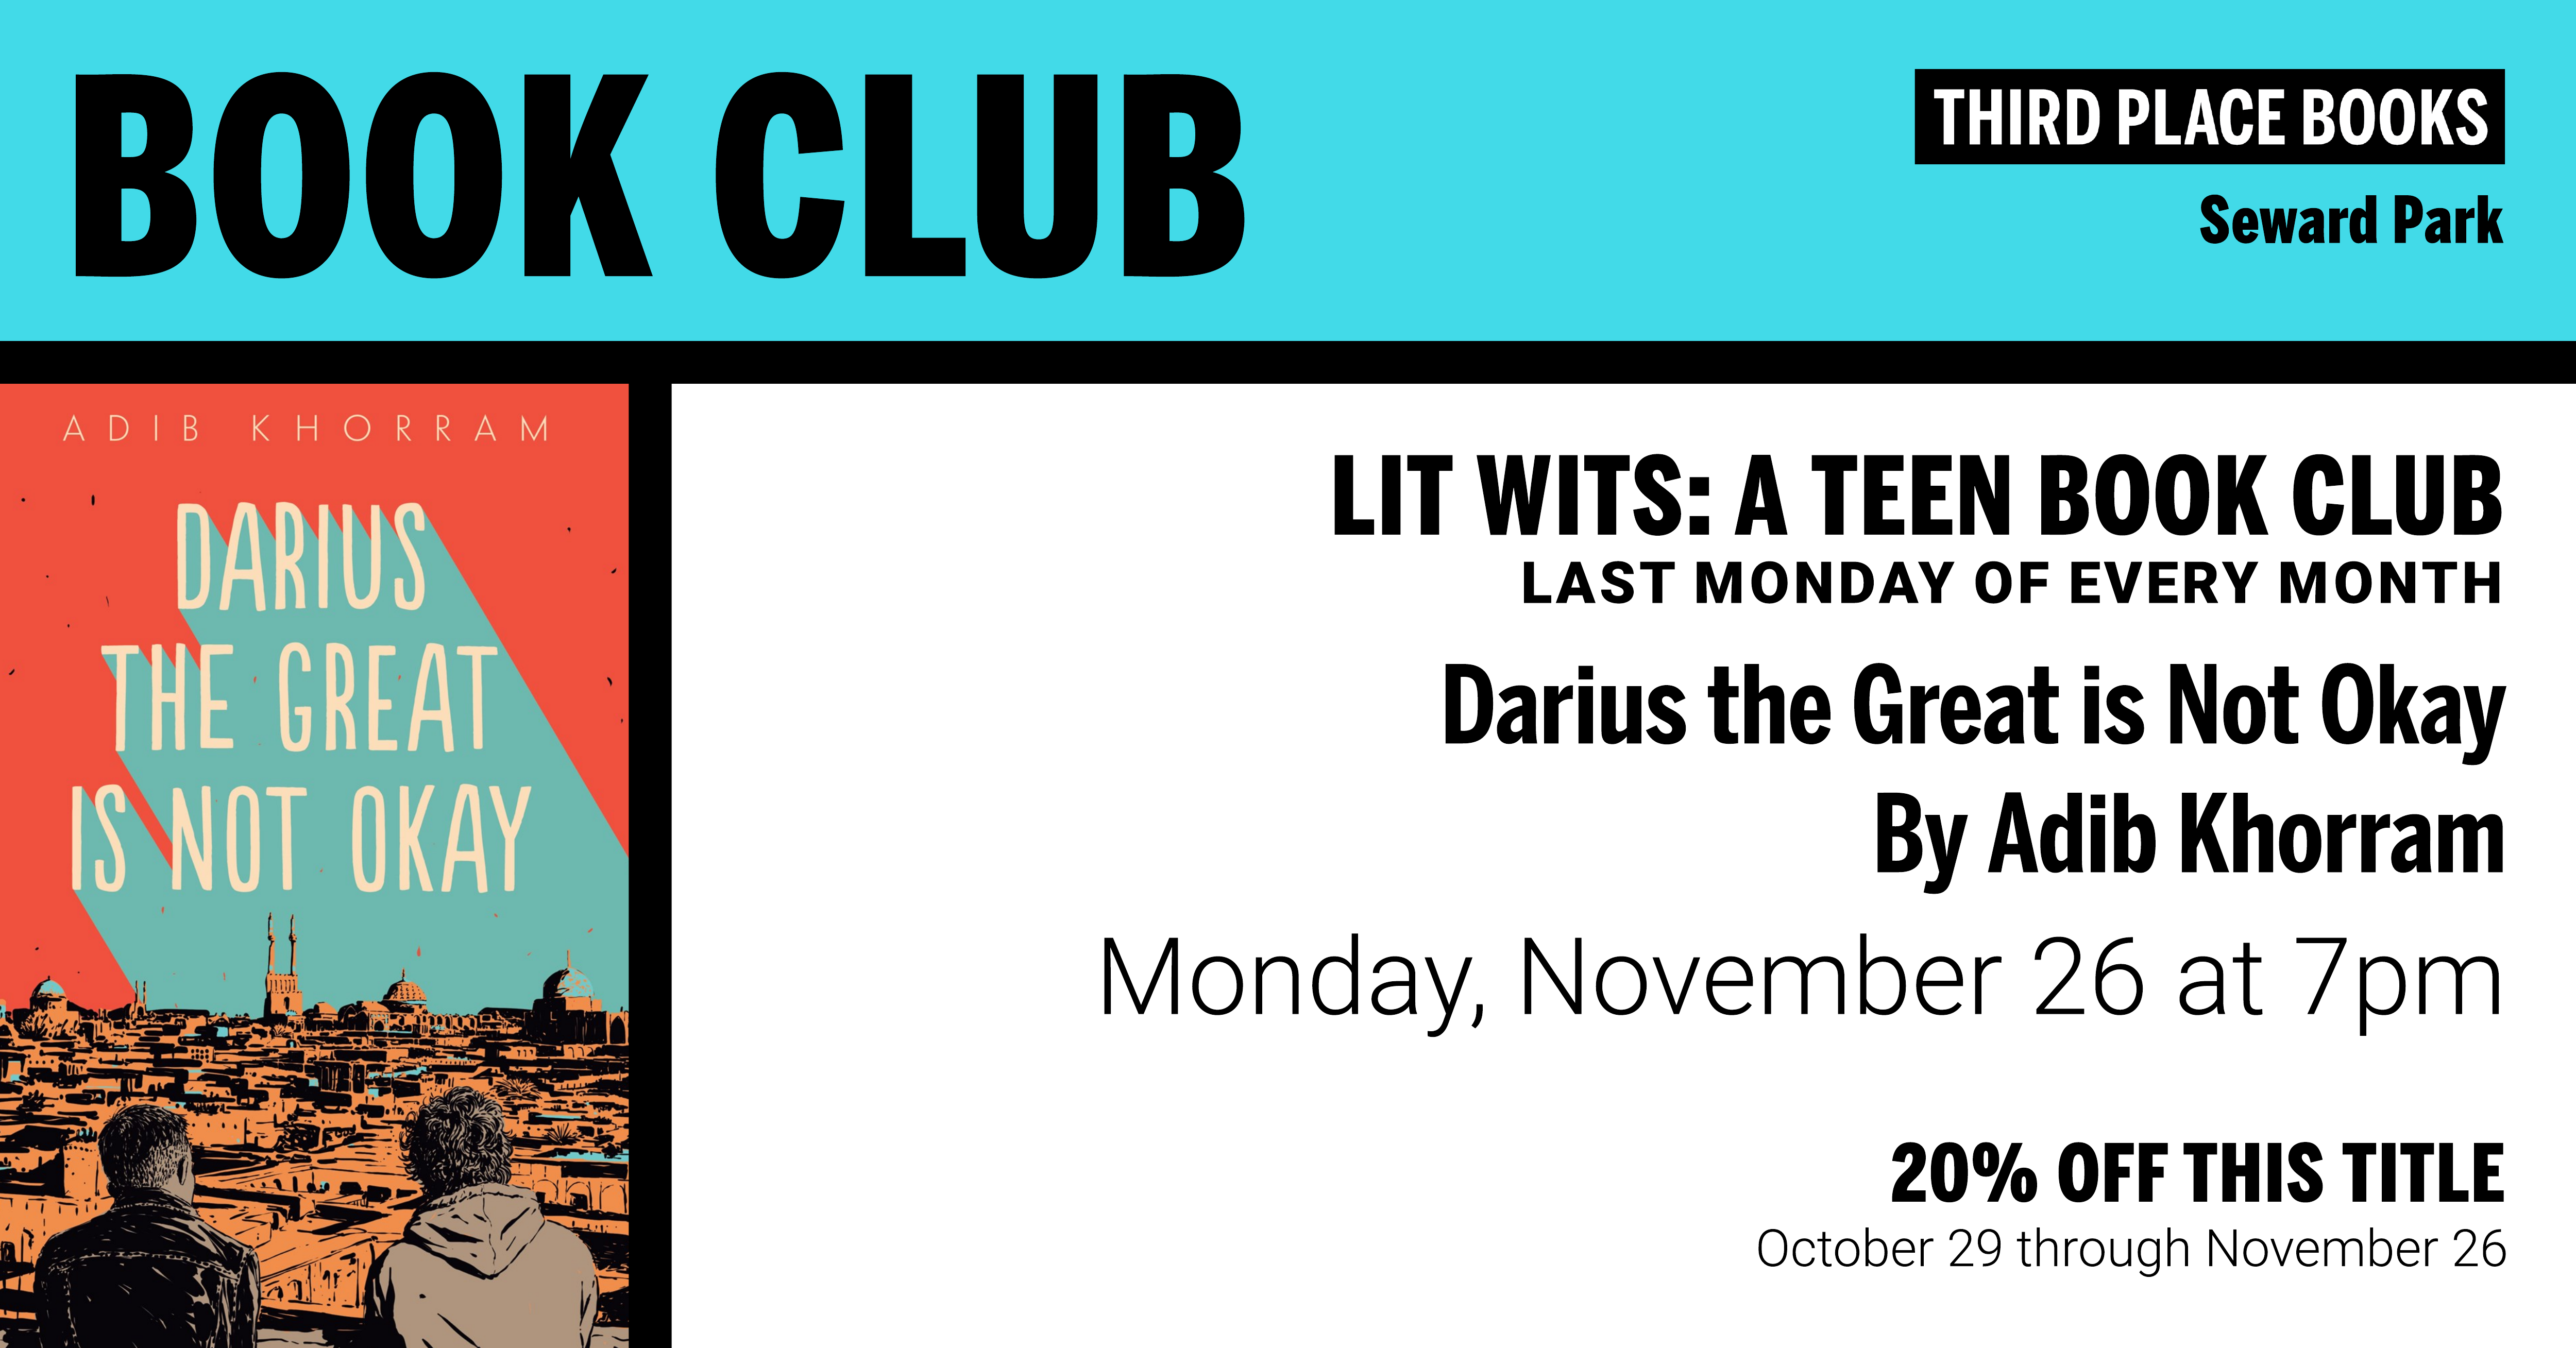 Lit Wits: A Teen Book Club discussing Darius the Great is Not Okay on Monday, November 26 at 7pm